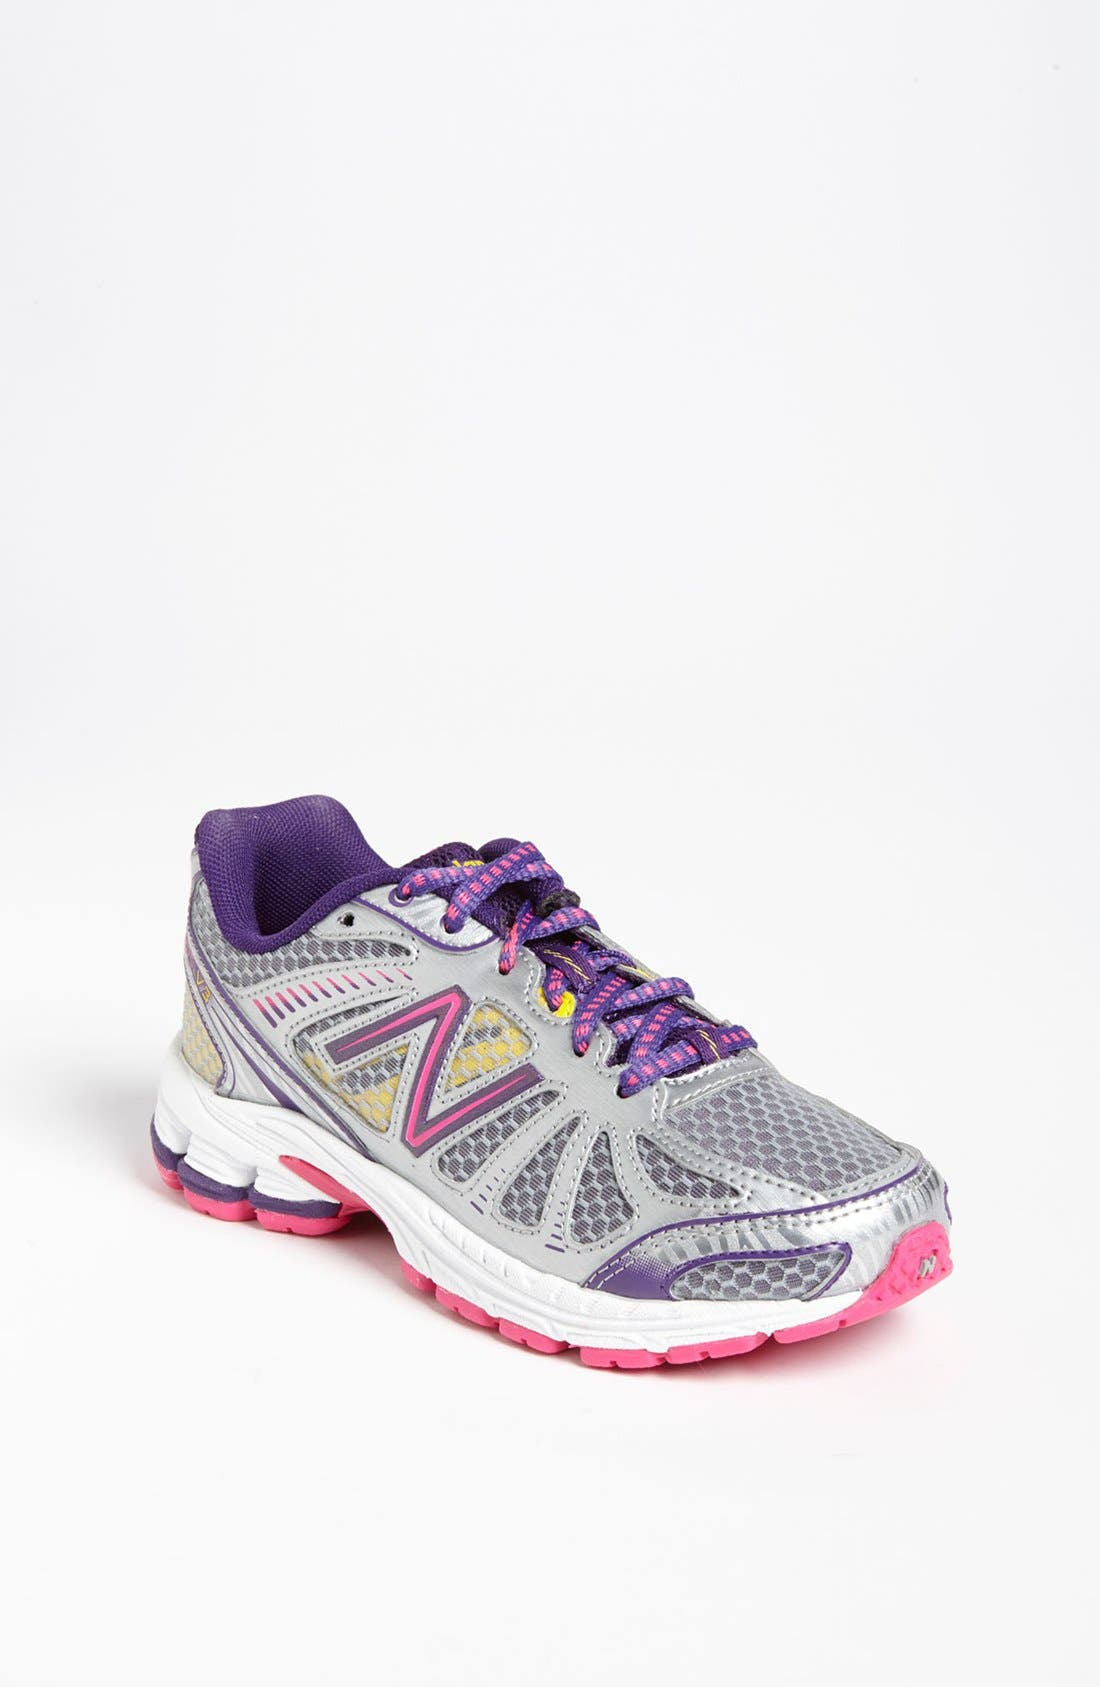 Main Image - New Balance 'Take Down 880' Running Shoe (Toddler, Little Kid & Big Kid) (Online Only)